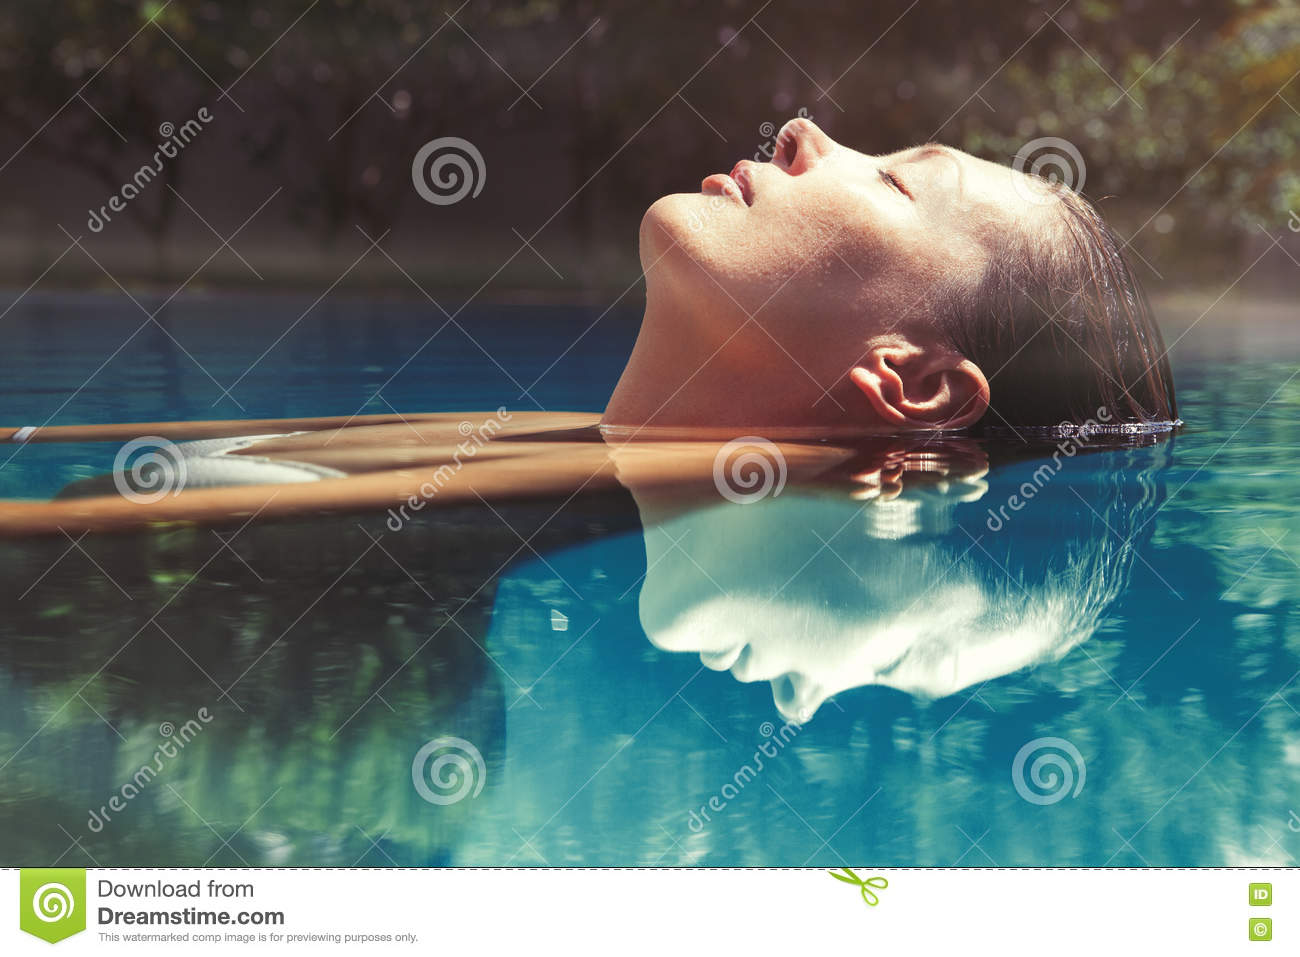 Download Enjoy The Summer. Woman Relaxing In The Pool Water Stock Image - Image of bathe, calm: 75594927